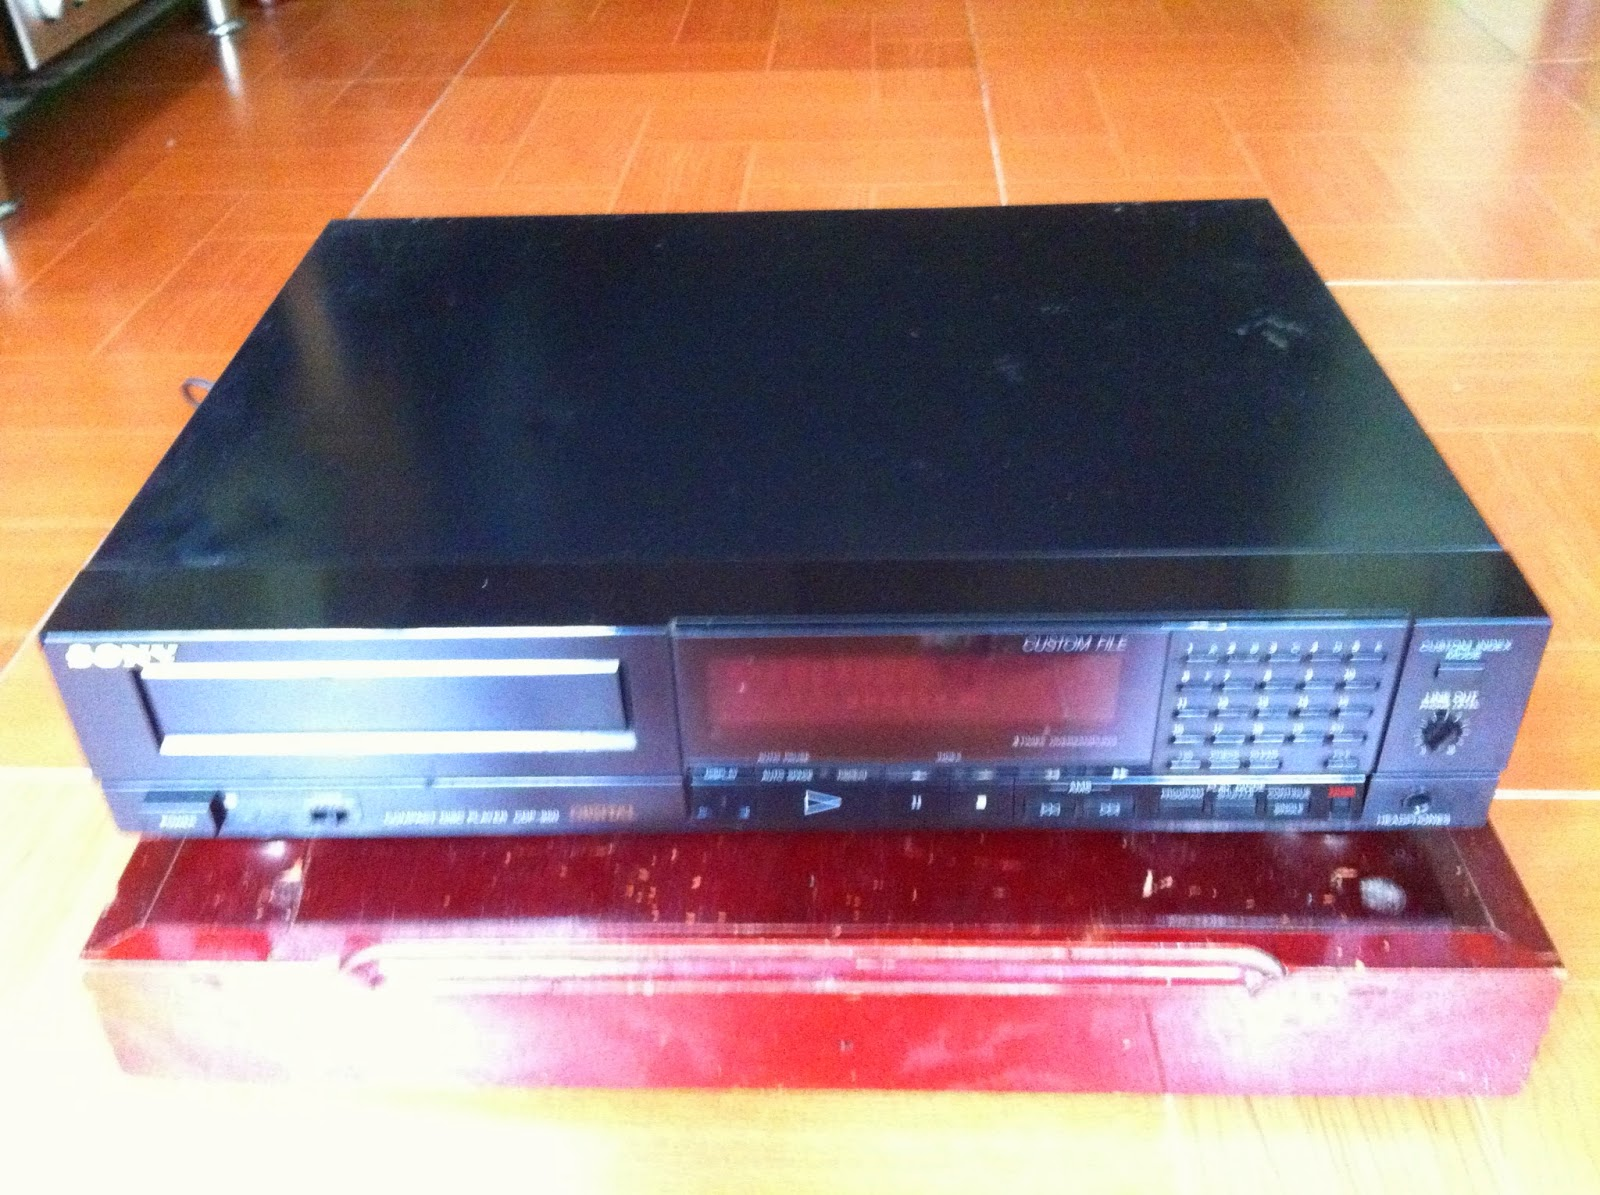 CD Player - Sony P950 - Made in Japan